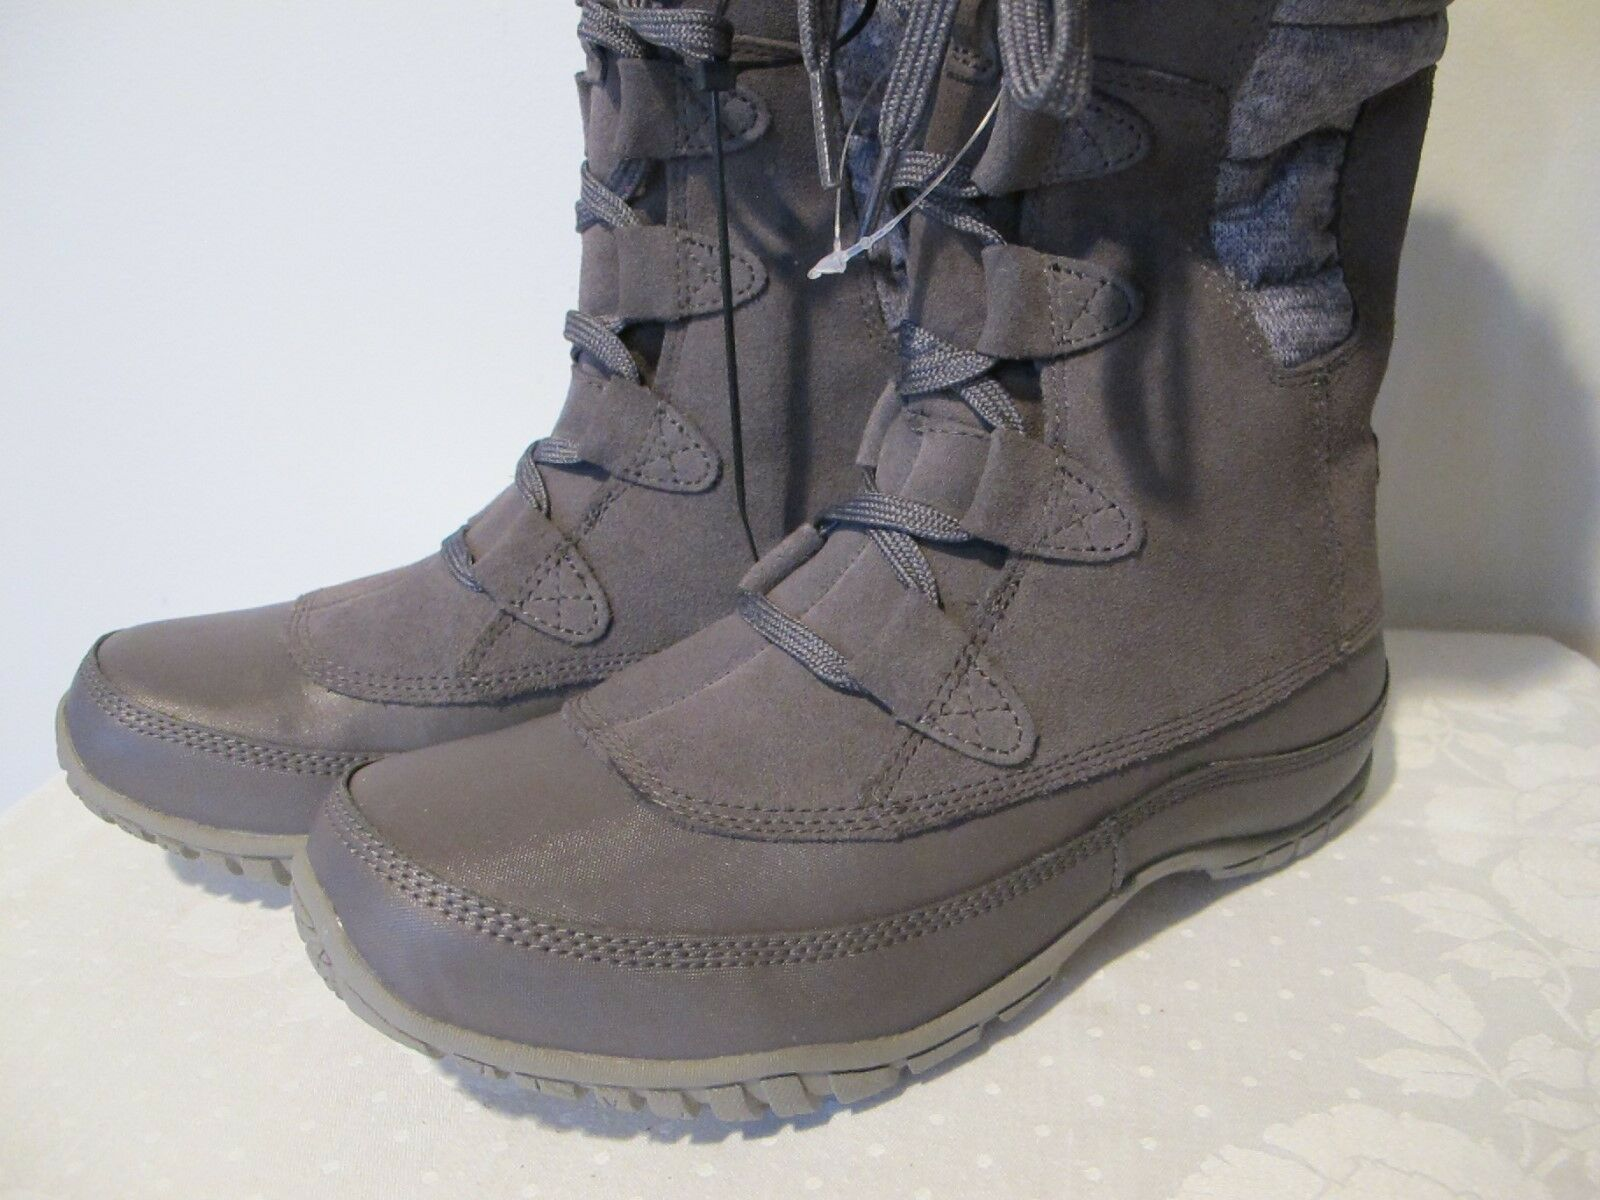 The North Face authentically Damens's gray waterproof winter lace-up New boot boot New  7 541967